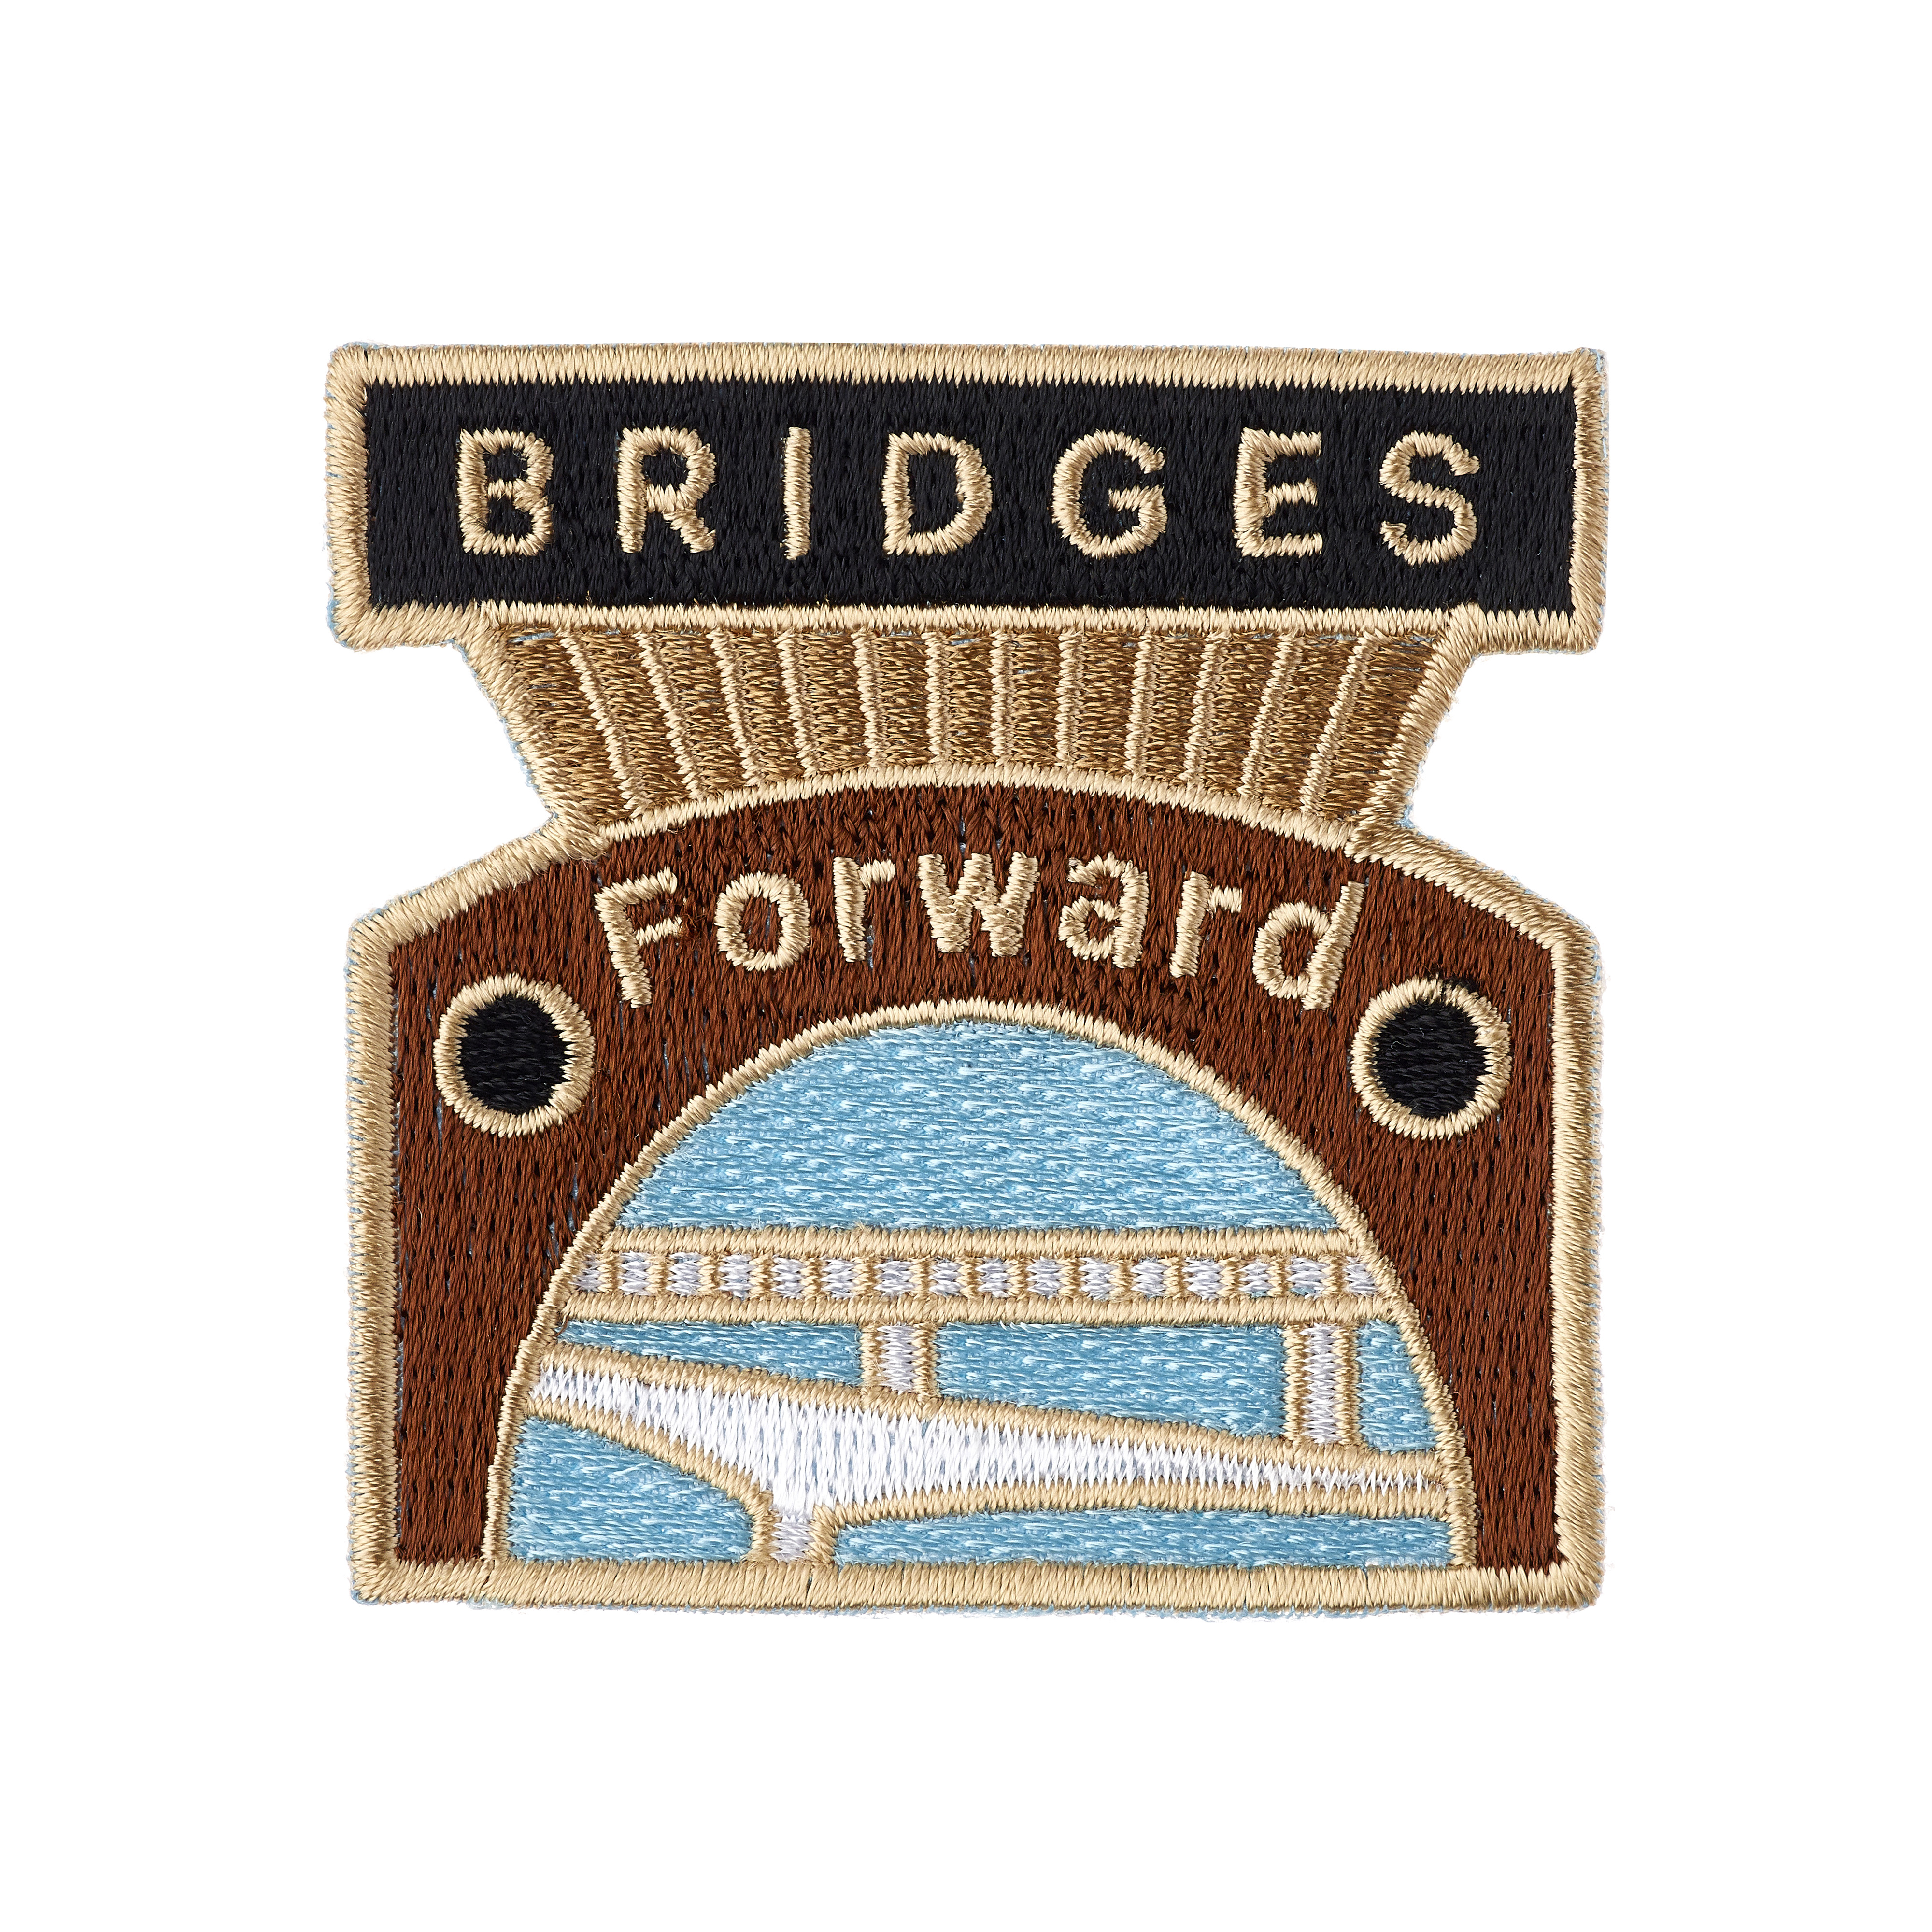 Embroidered woven cloth patch badges - Made by Cooper